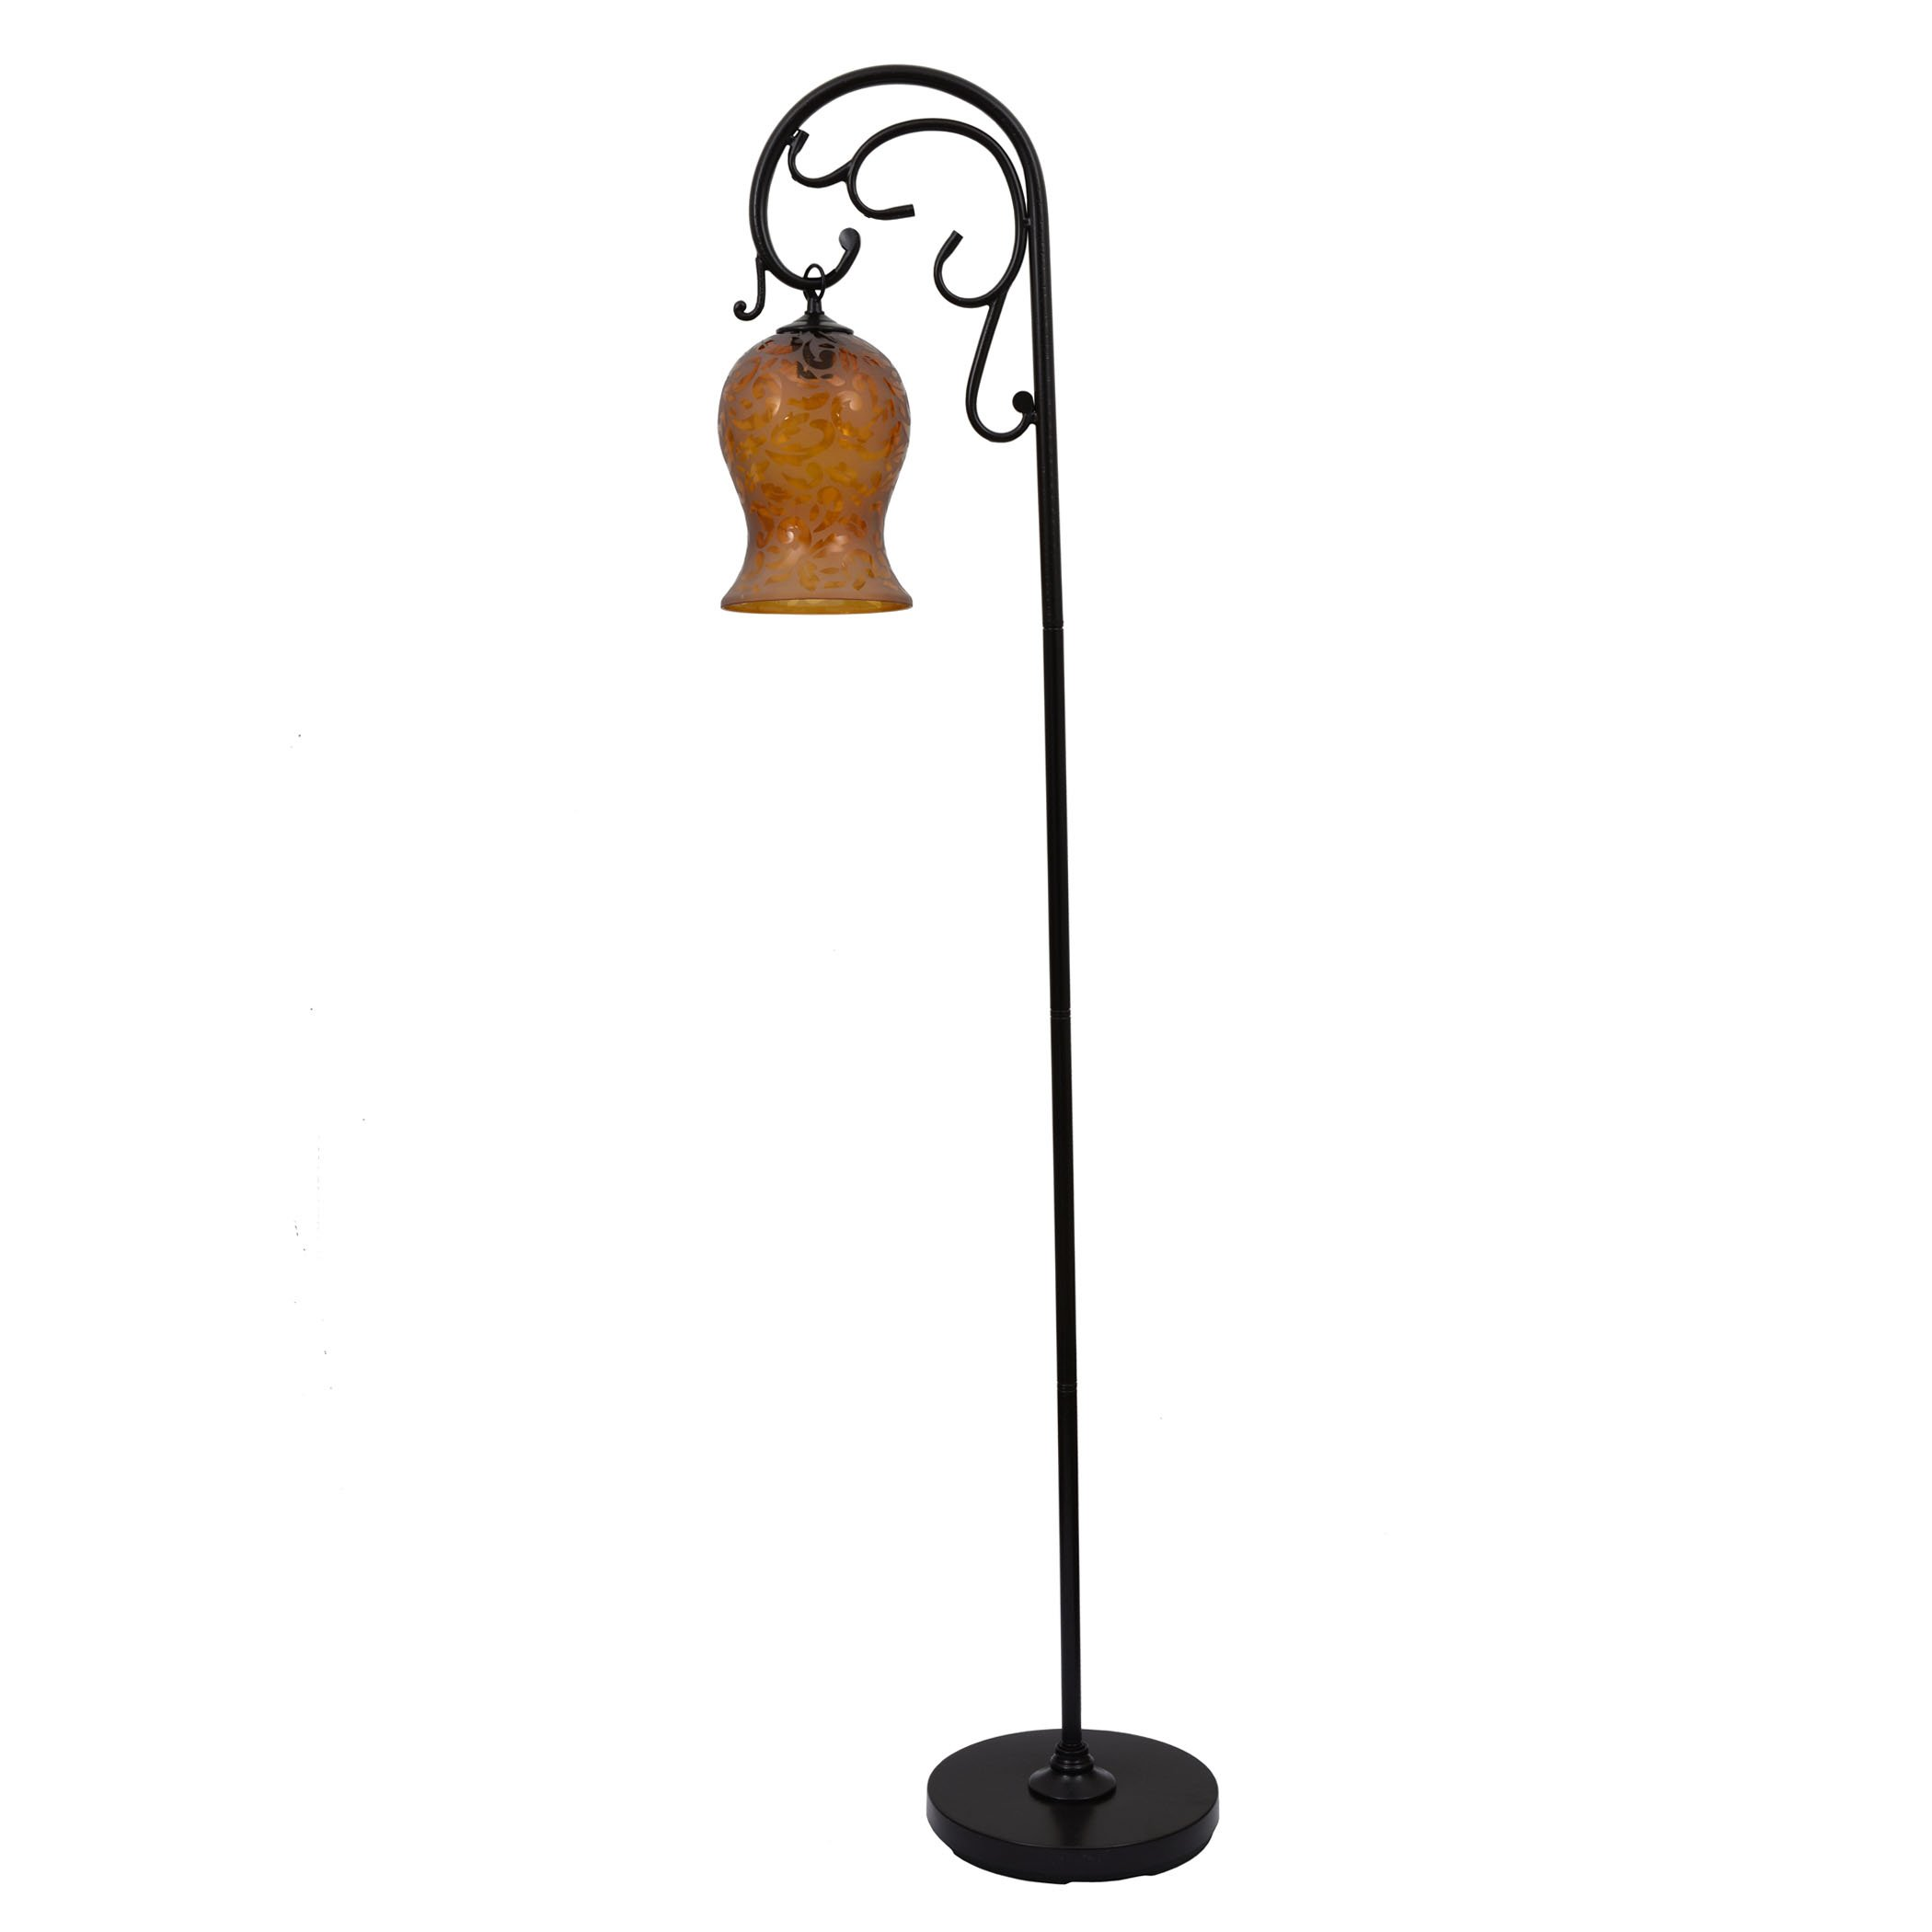 Décor Therapy PL1580 64 Inch Textured Floor Lamp, Bronze